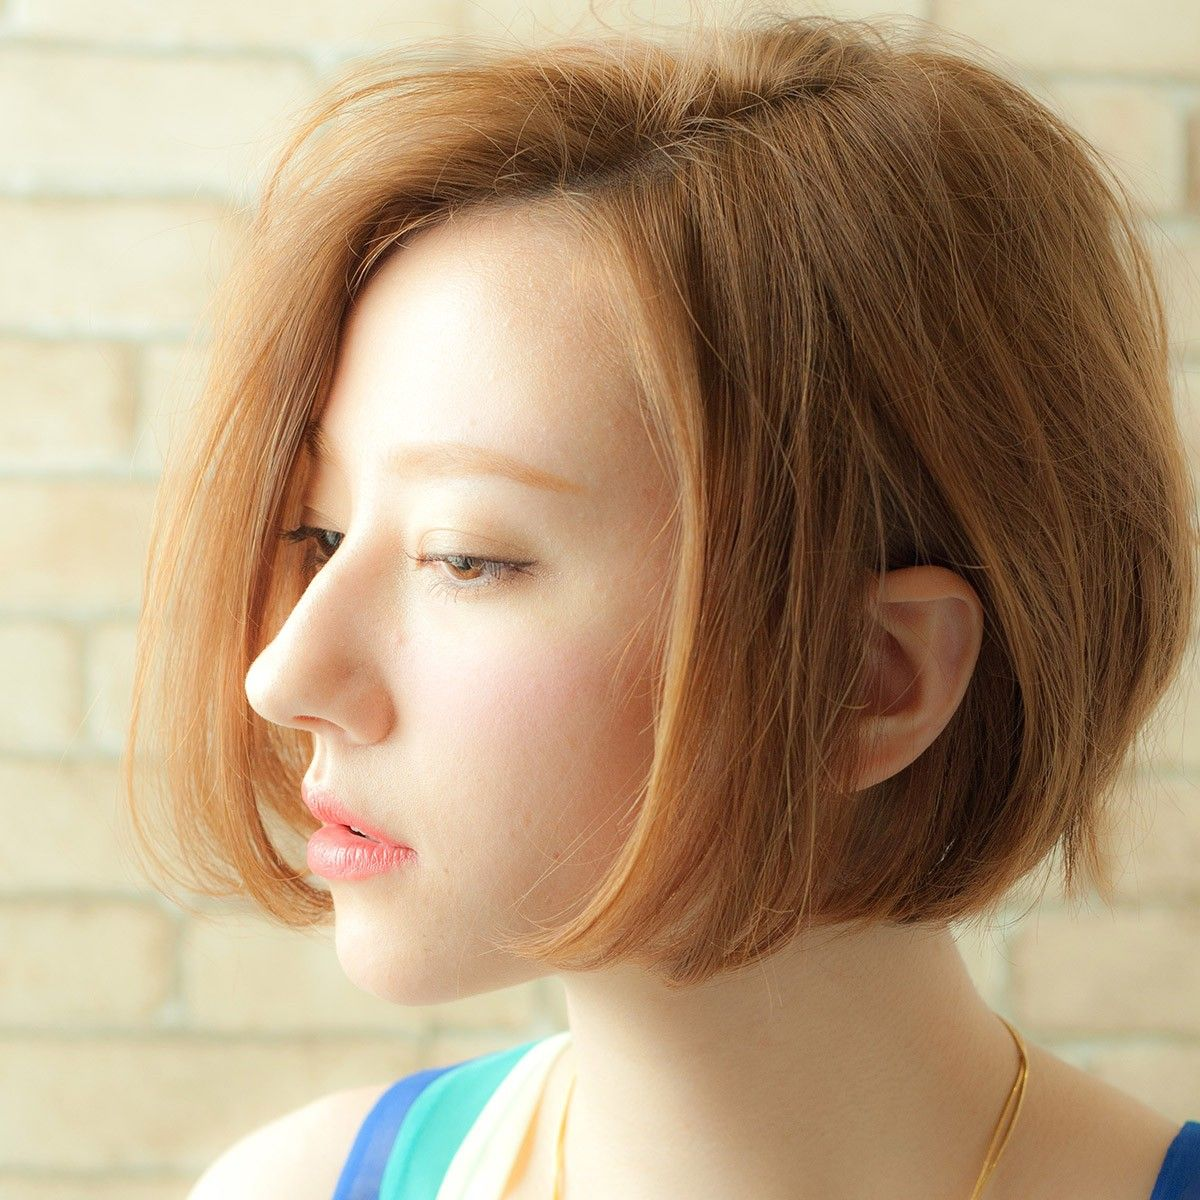 how to get hair style 髪型 ヘアスタイル ボブストレートの前髪なしやレイヤーで大人女子に変身 getbeauty hair 7503